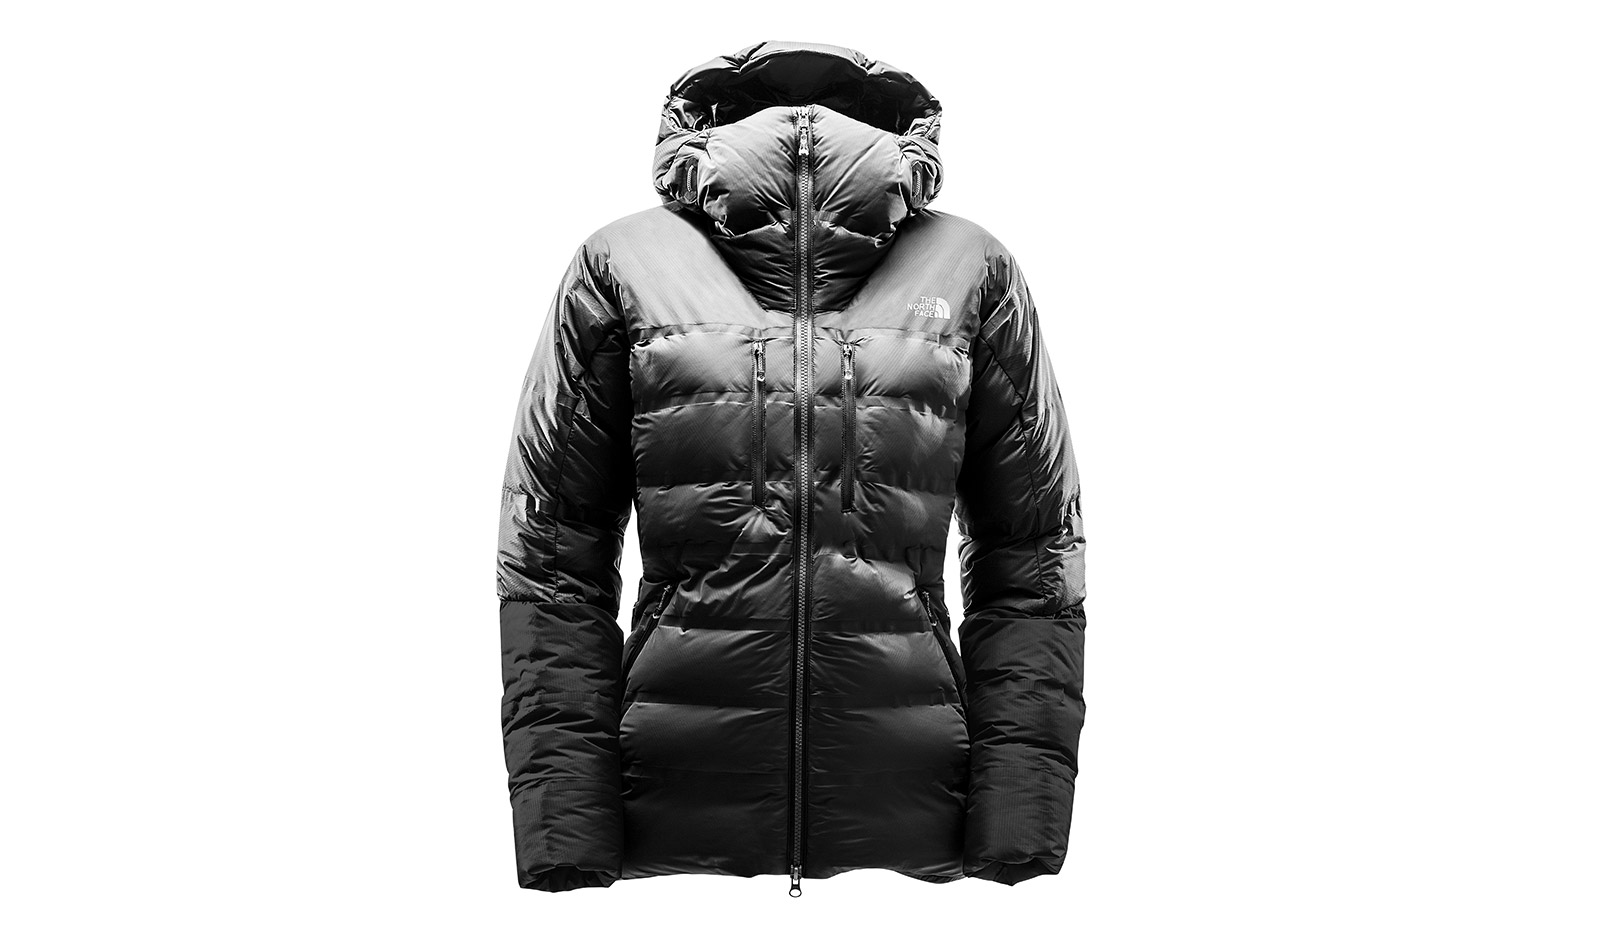 0f39a0585 The North Face Reboots Their High Performance Summit Series - COOL ...